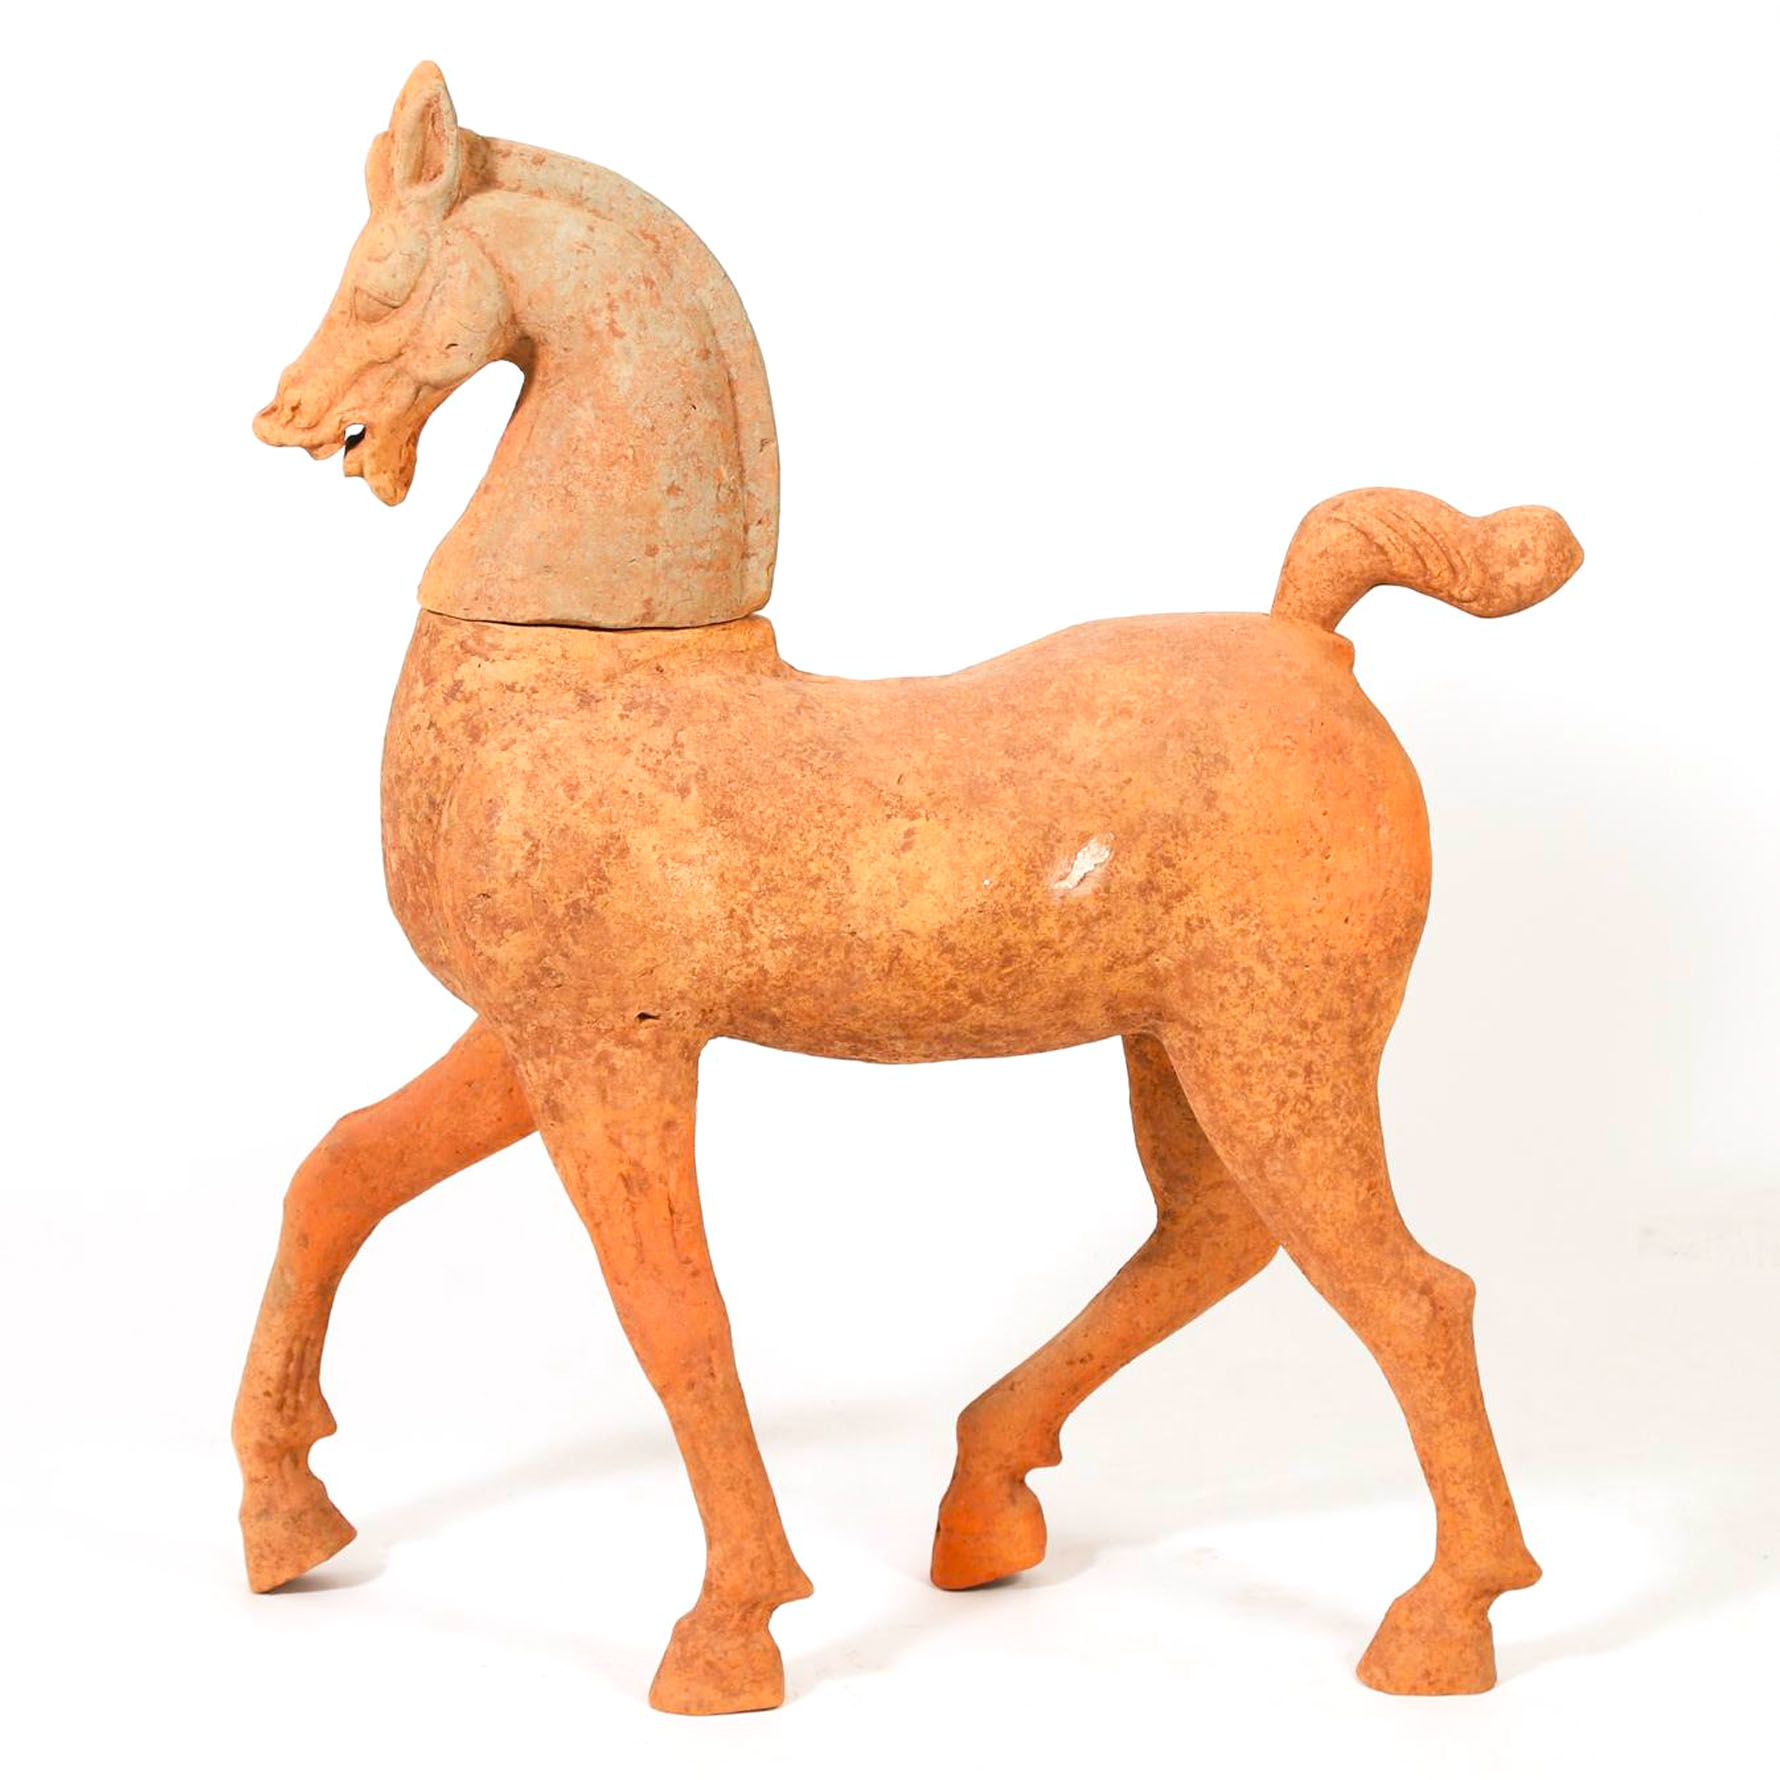 Large Chinese Pottery Walking Horse, Sichuan Province, Han Dynasty